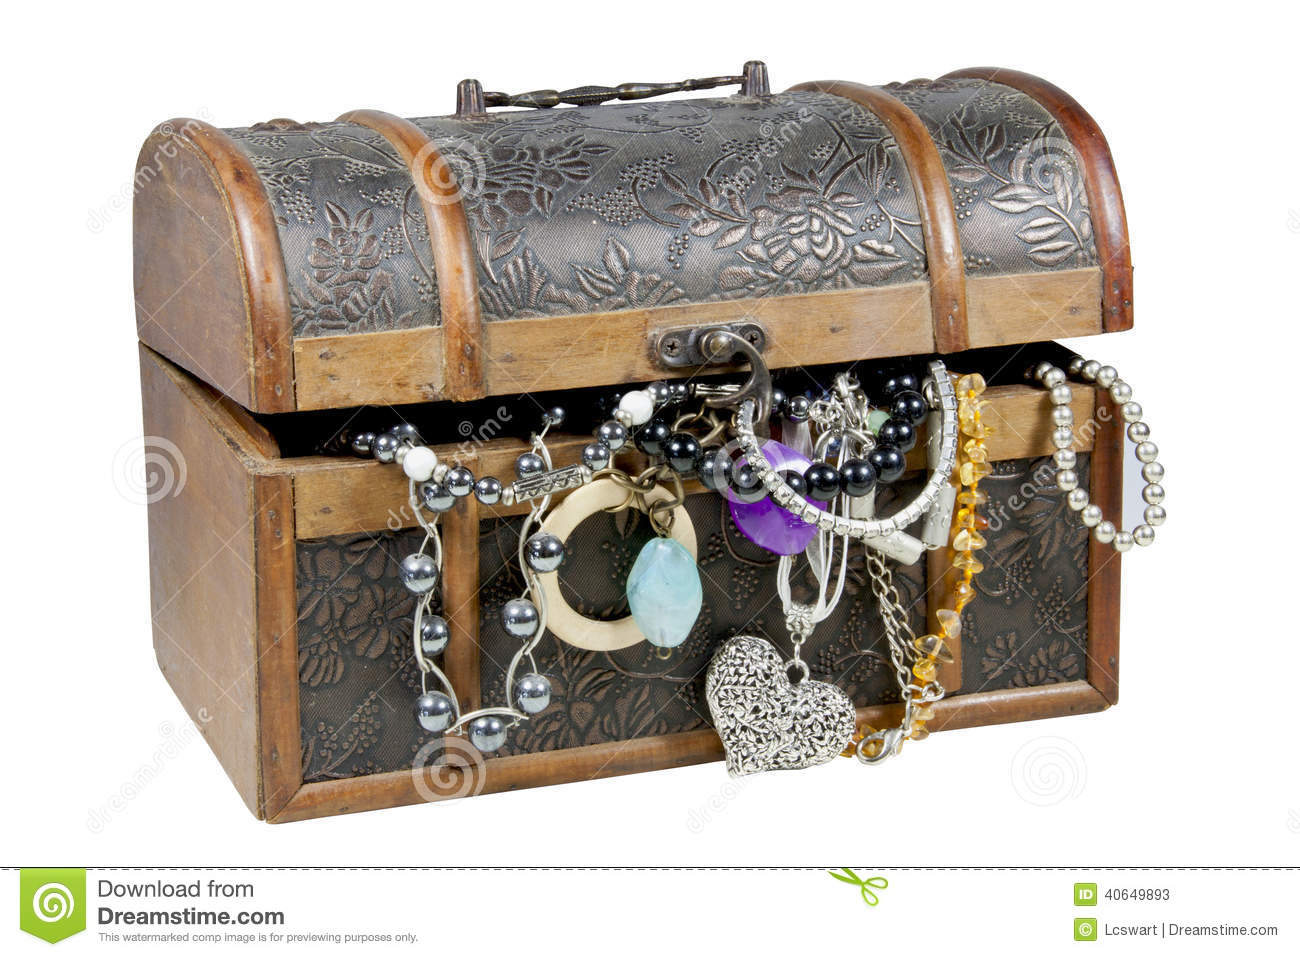 Stock Photos Ornamental Wooden Treasure Chest Overflowing Jewellery Isolated Image40649893 likewise Meeting 340435571 in addition Tattoo Picture Tattoss For Girls Tumblr additionally 1 further 3 Piece Drawer Organizer Set 99731. on metal chest with lock